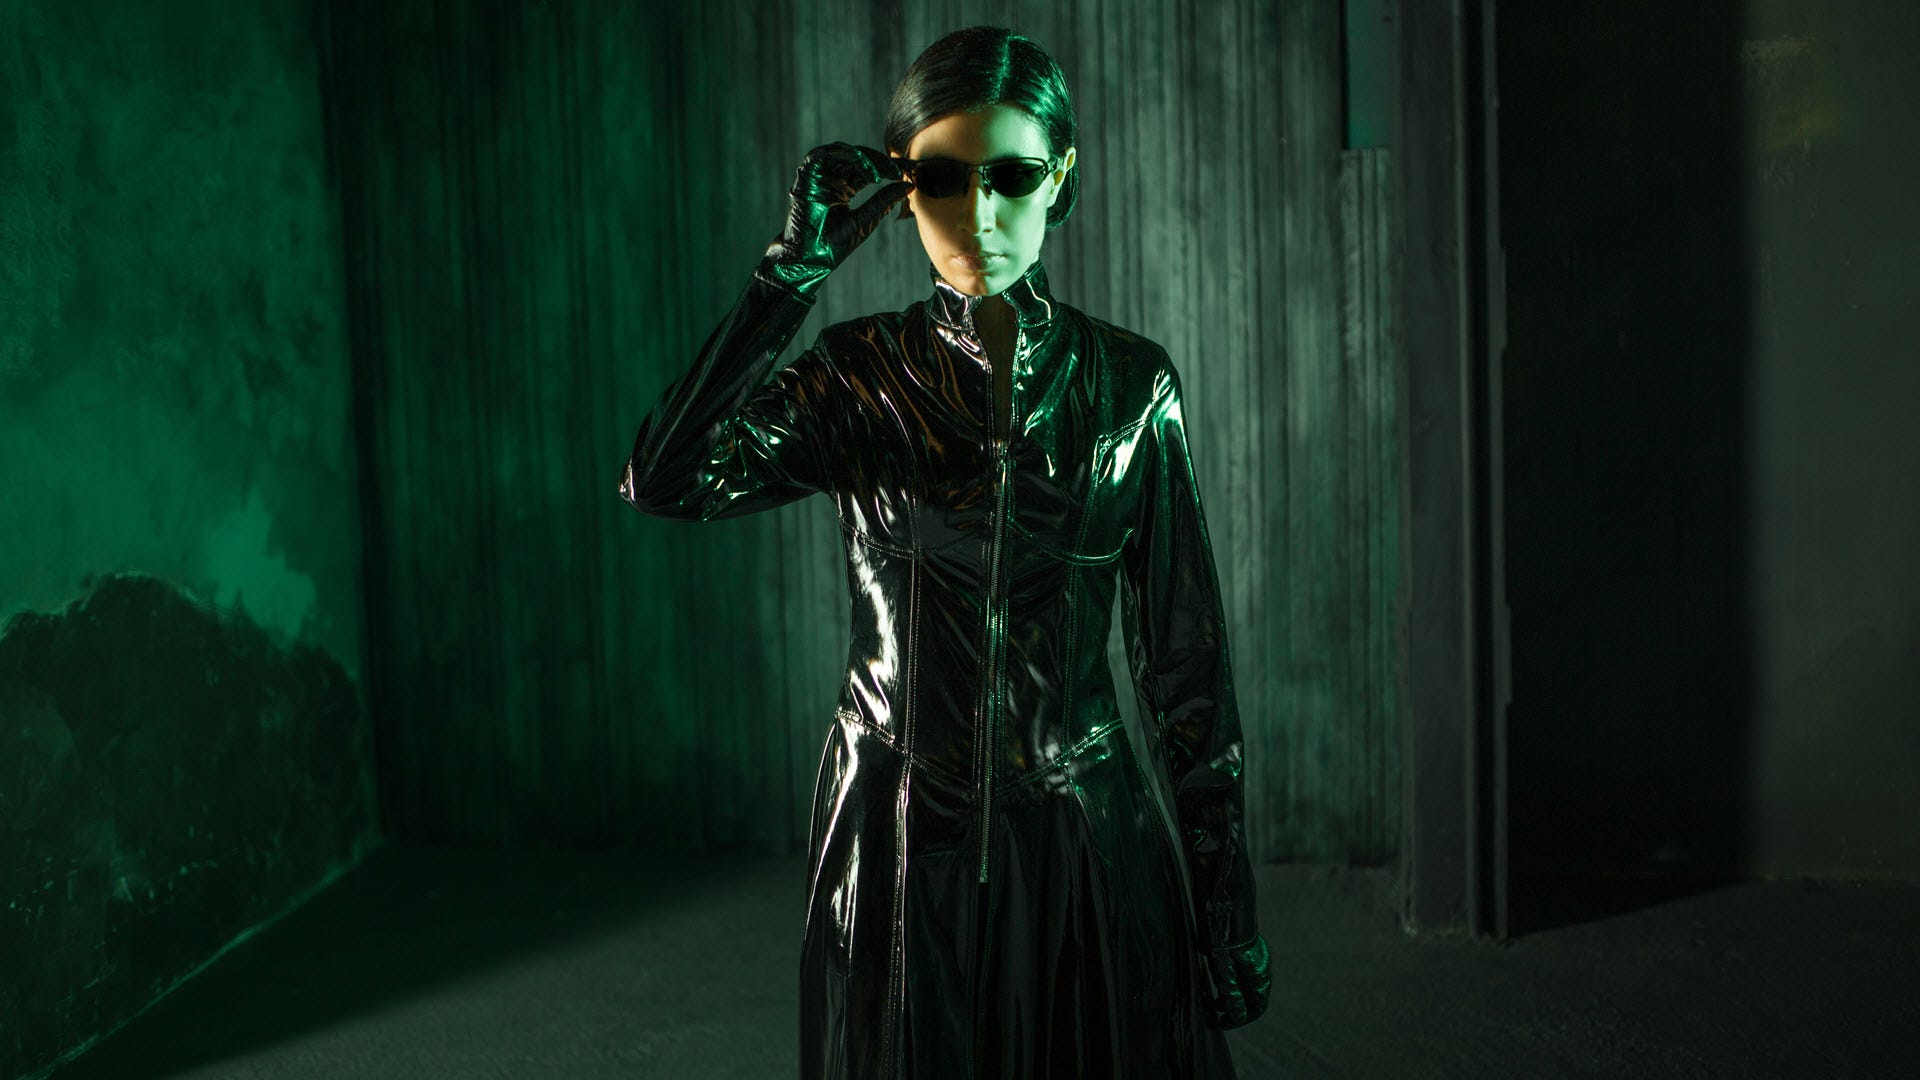 A young woman dressed like the character Trinity from 'The Matrix' surrounded by green hues.